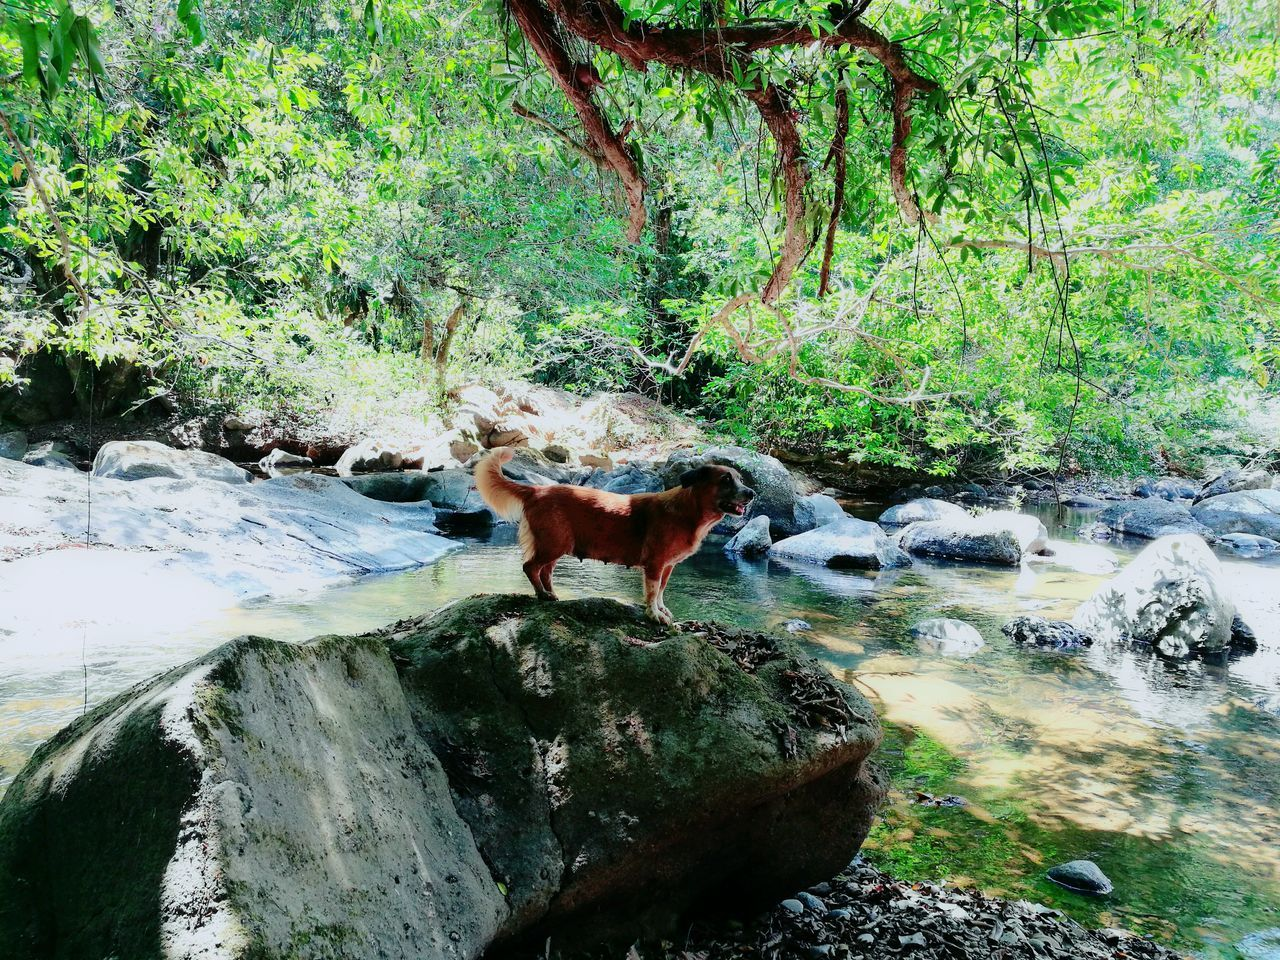 animal themes, one animal, rock - object, mammal, nature, standing, tree, domestic animals, water, day, outdoors, no people, green color, full length, animals in the wild, beauty in nature, waterfall